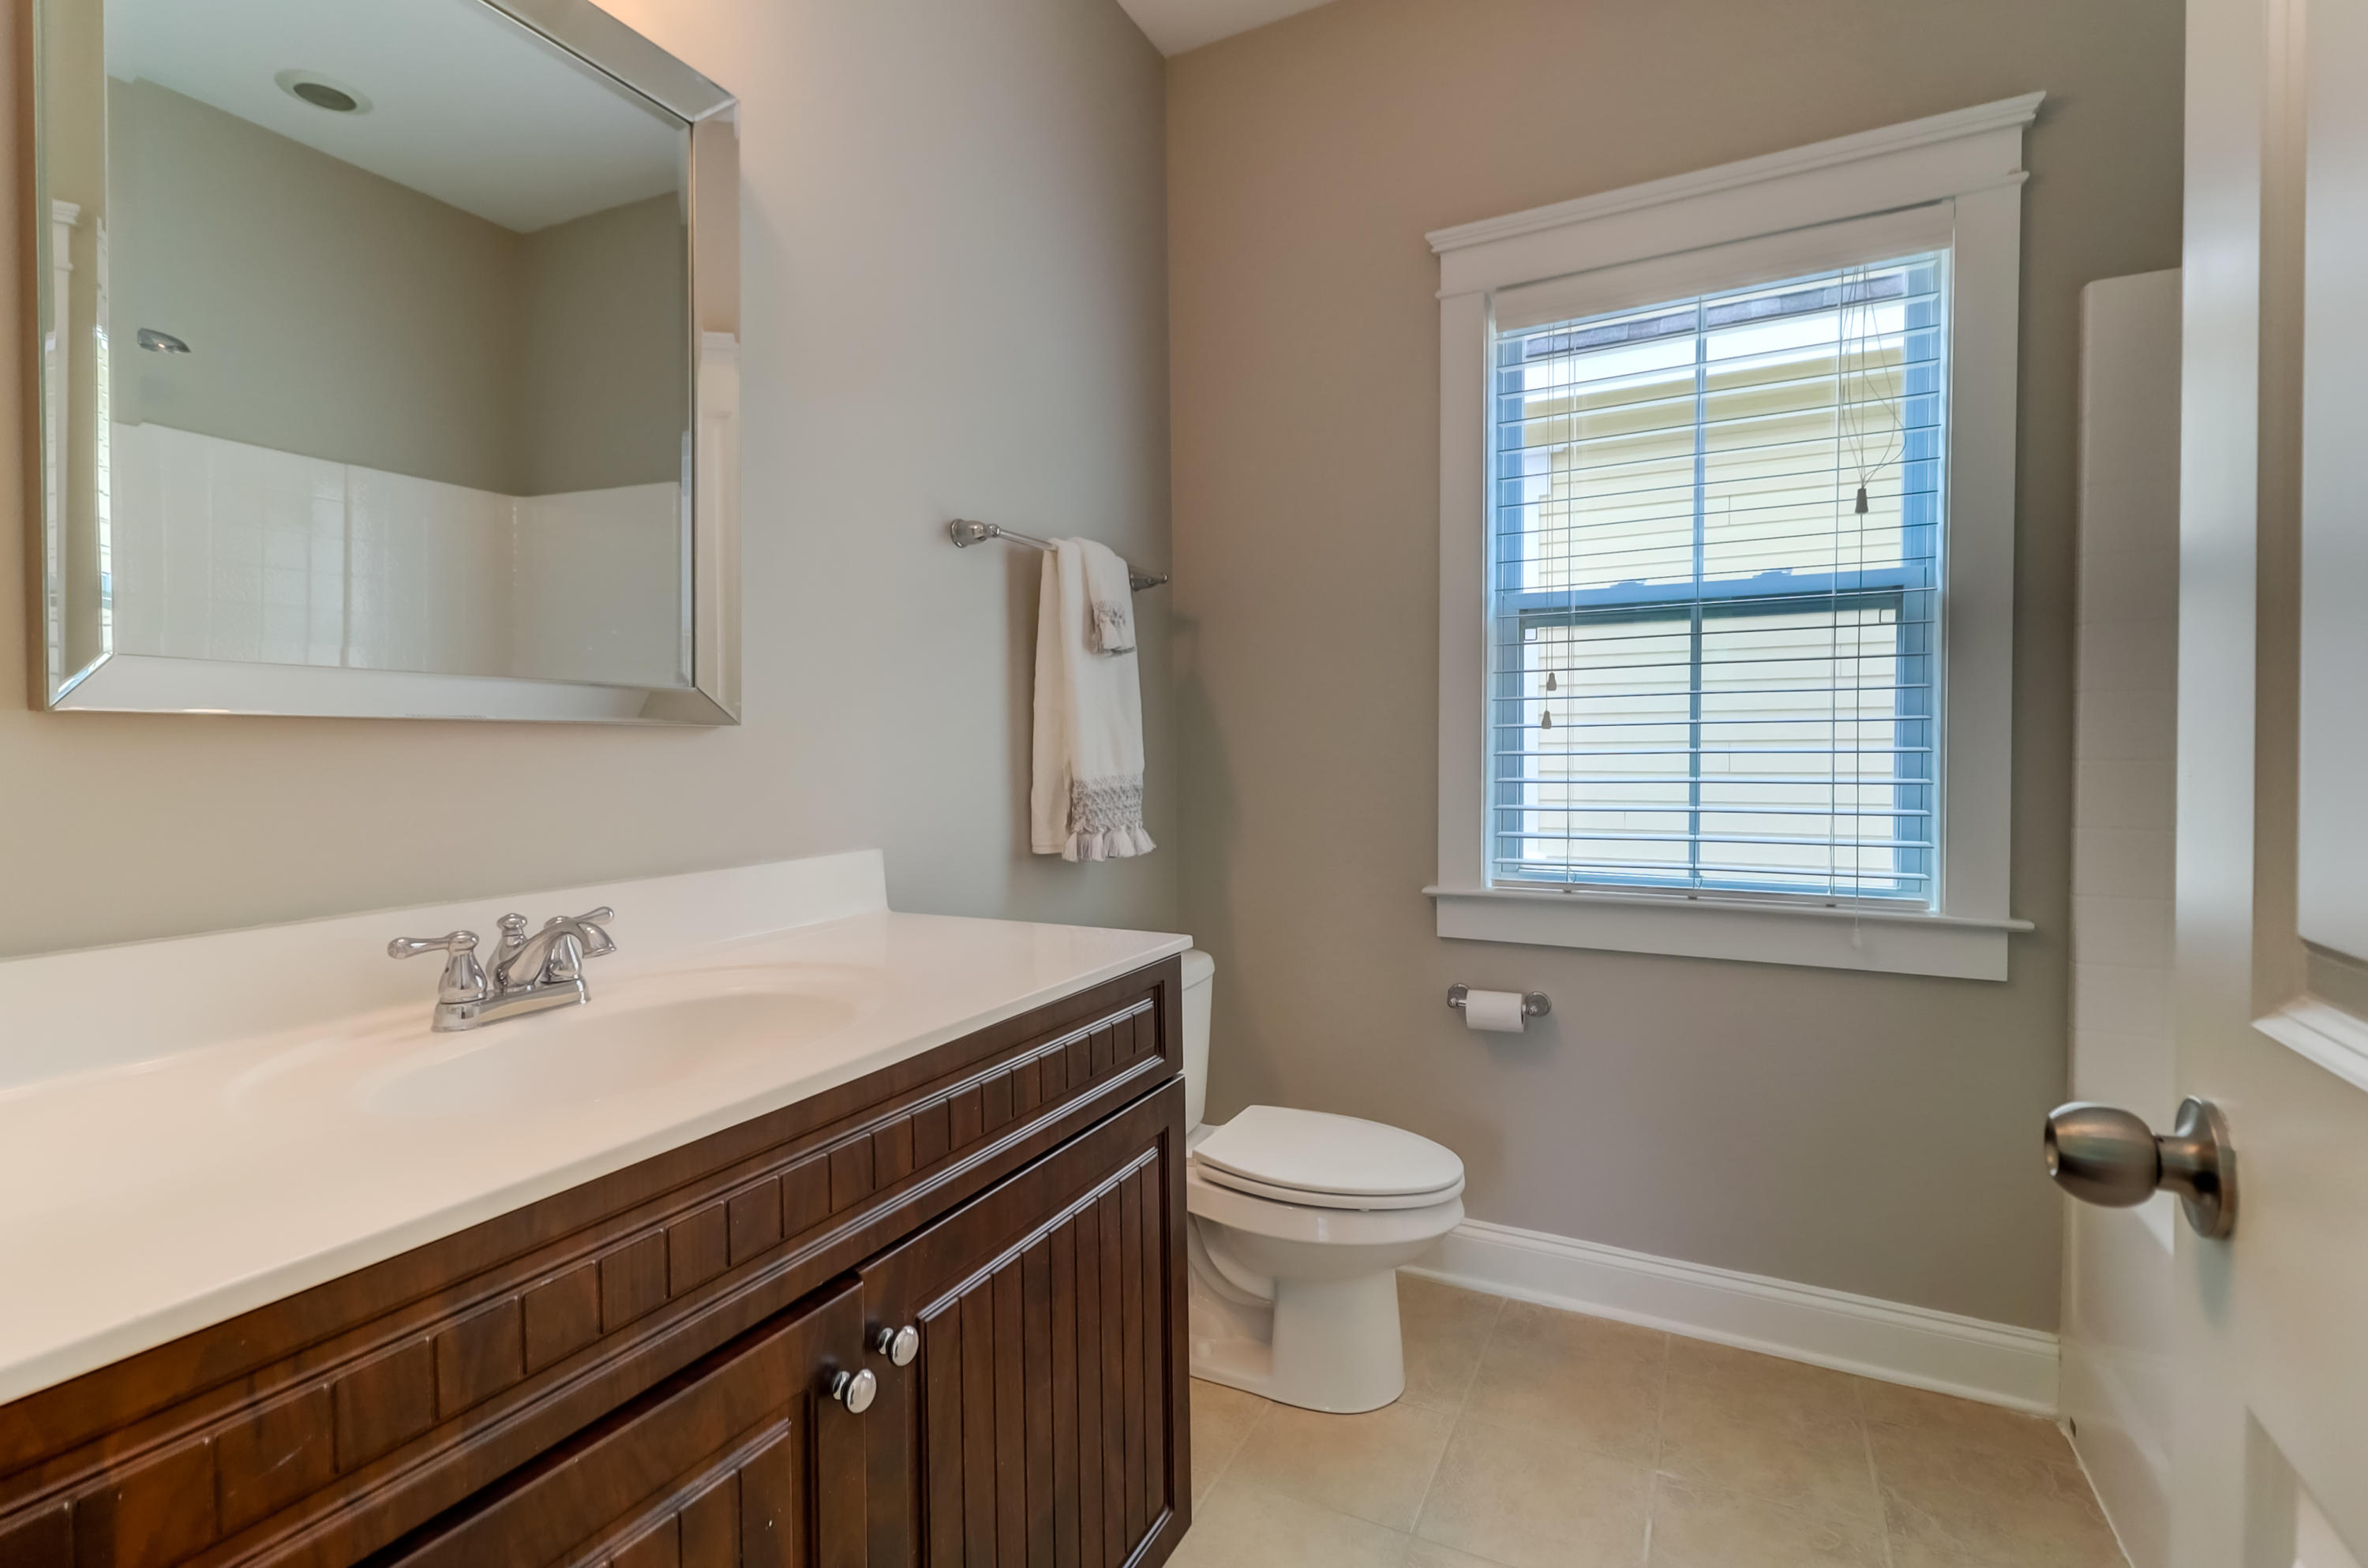 Watermark Homes For Sale - 1203 Appling, Mount Pleasant, SC - 25